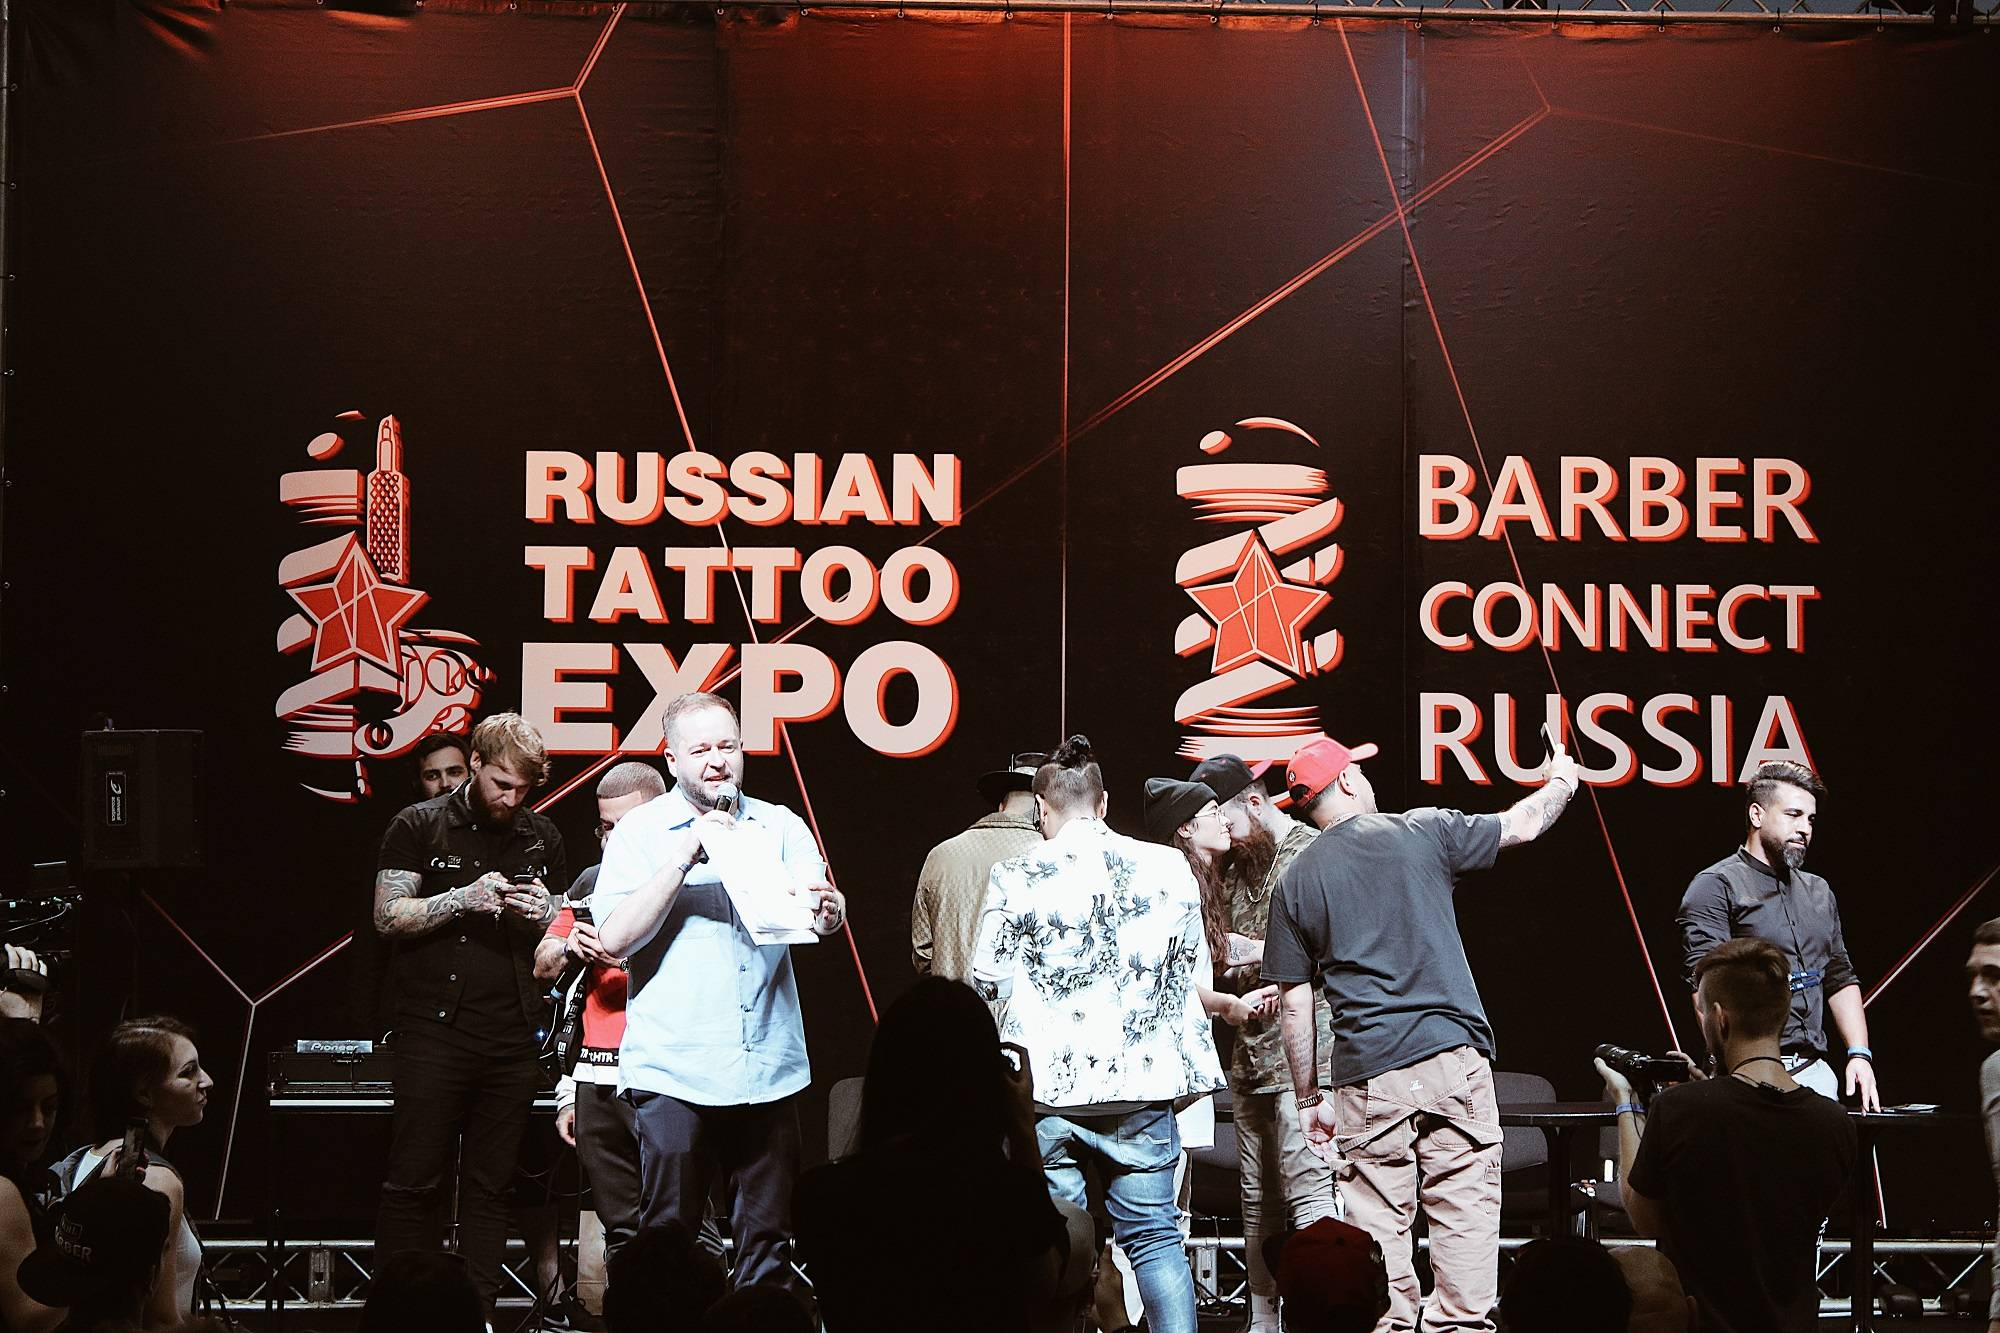 BARBER CONNECT RUSSIA 2018 Сокольники - Stone Forest